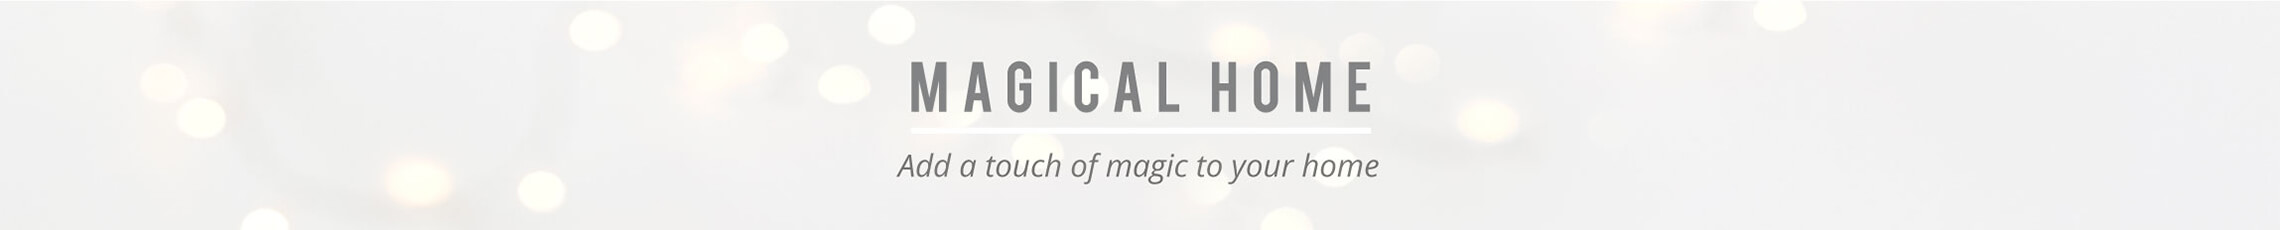 Add a touch of magic to your home